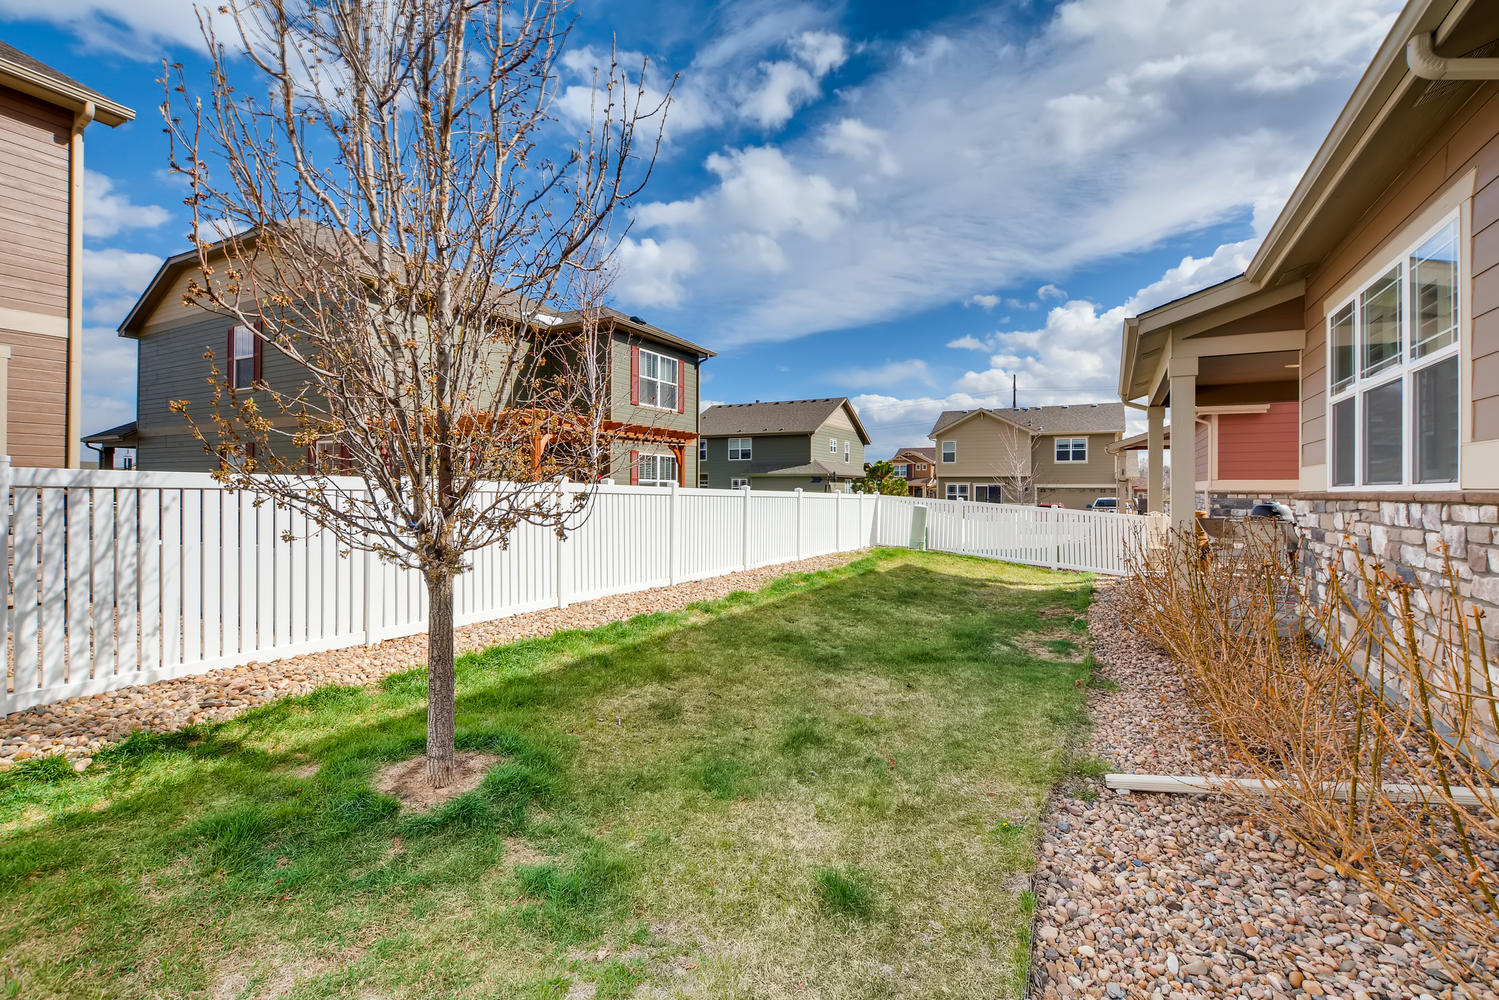 REAL ESTATE LISTING: 2182 Steppe Dr Longmont Covered Back Yard